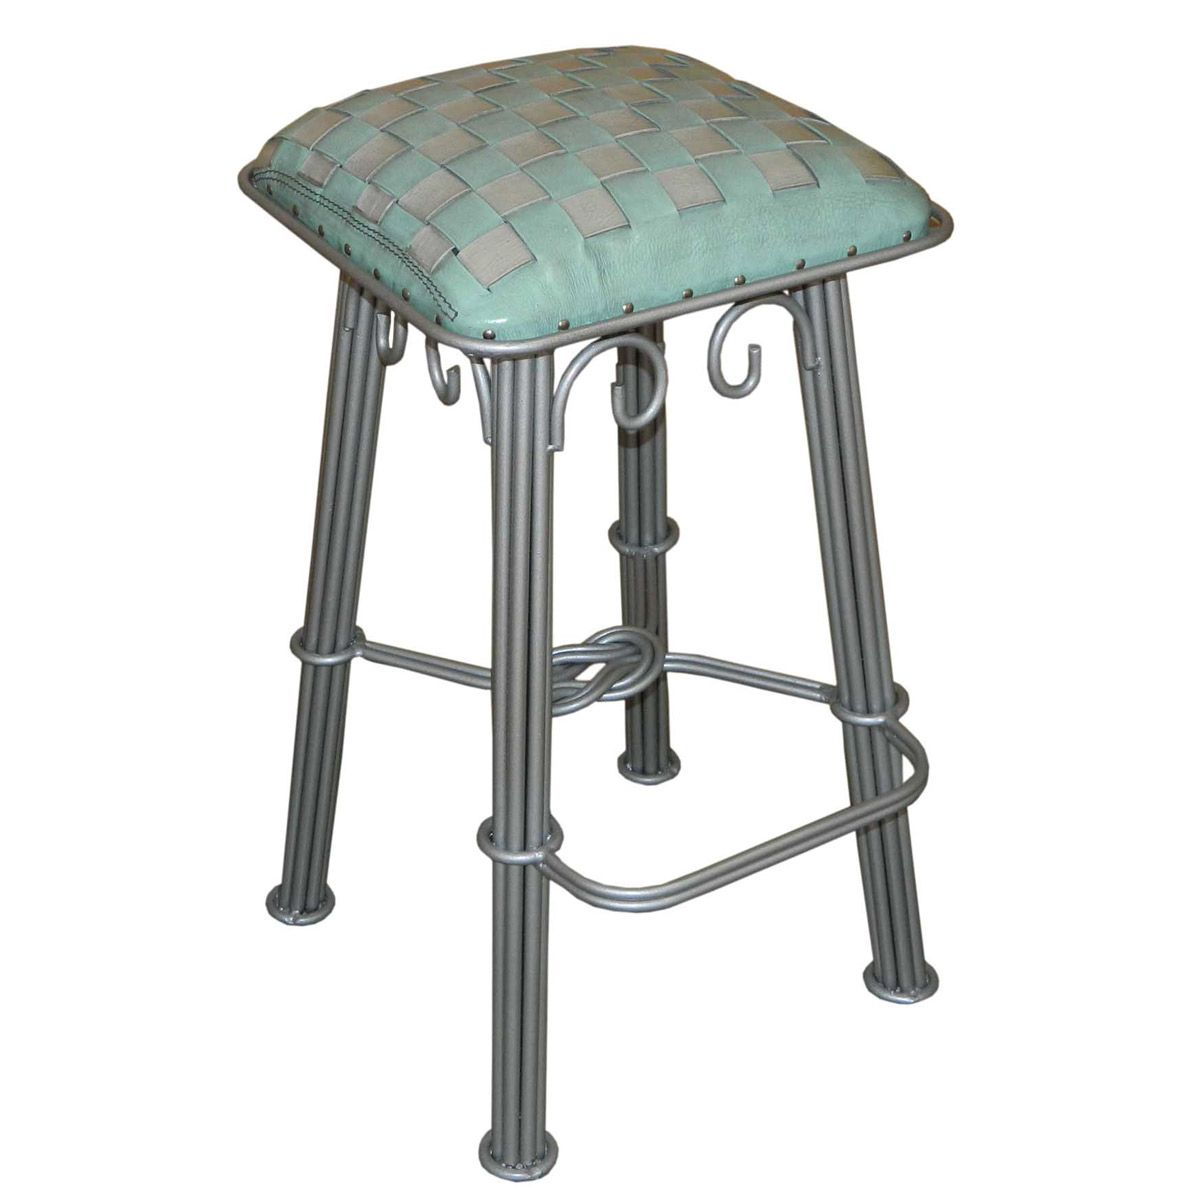 Ash Turquoise Braided Leather Barstool - Silver Iron